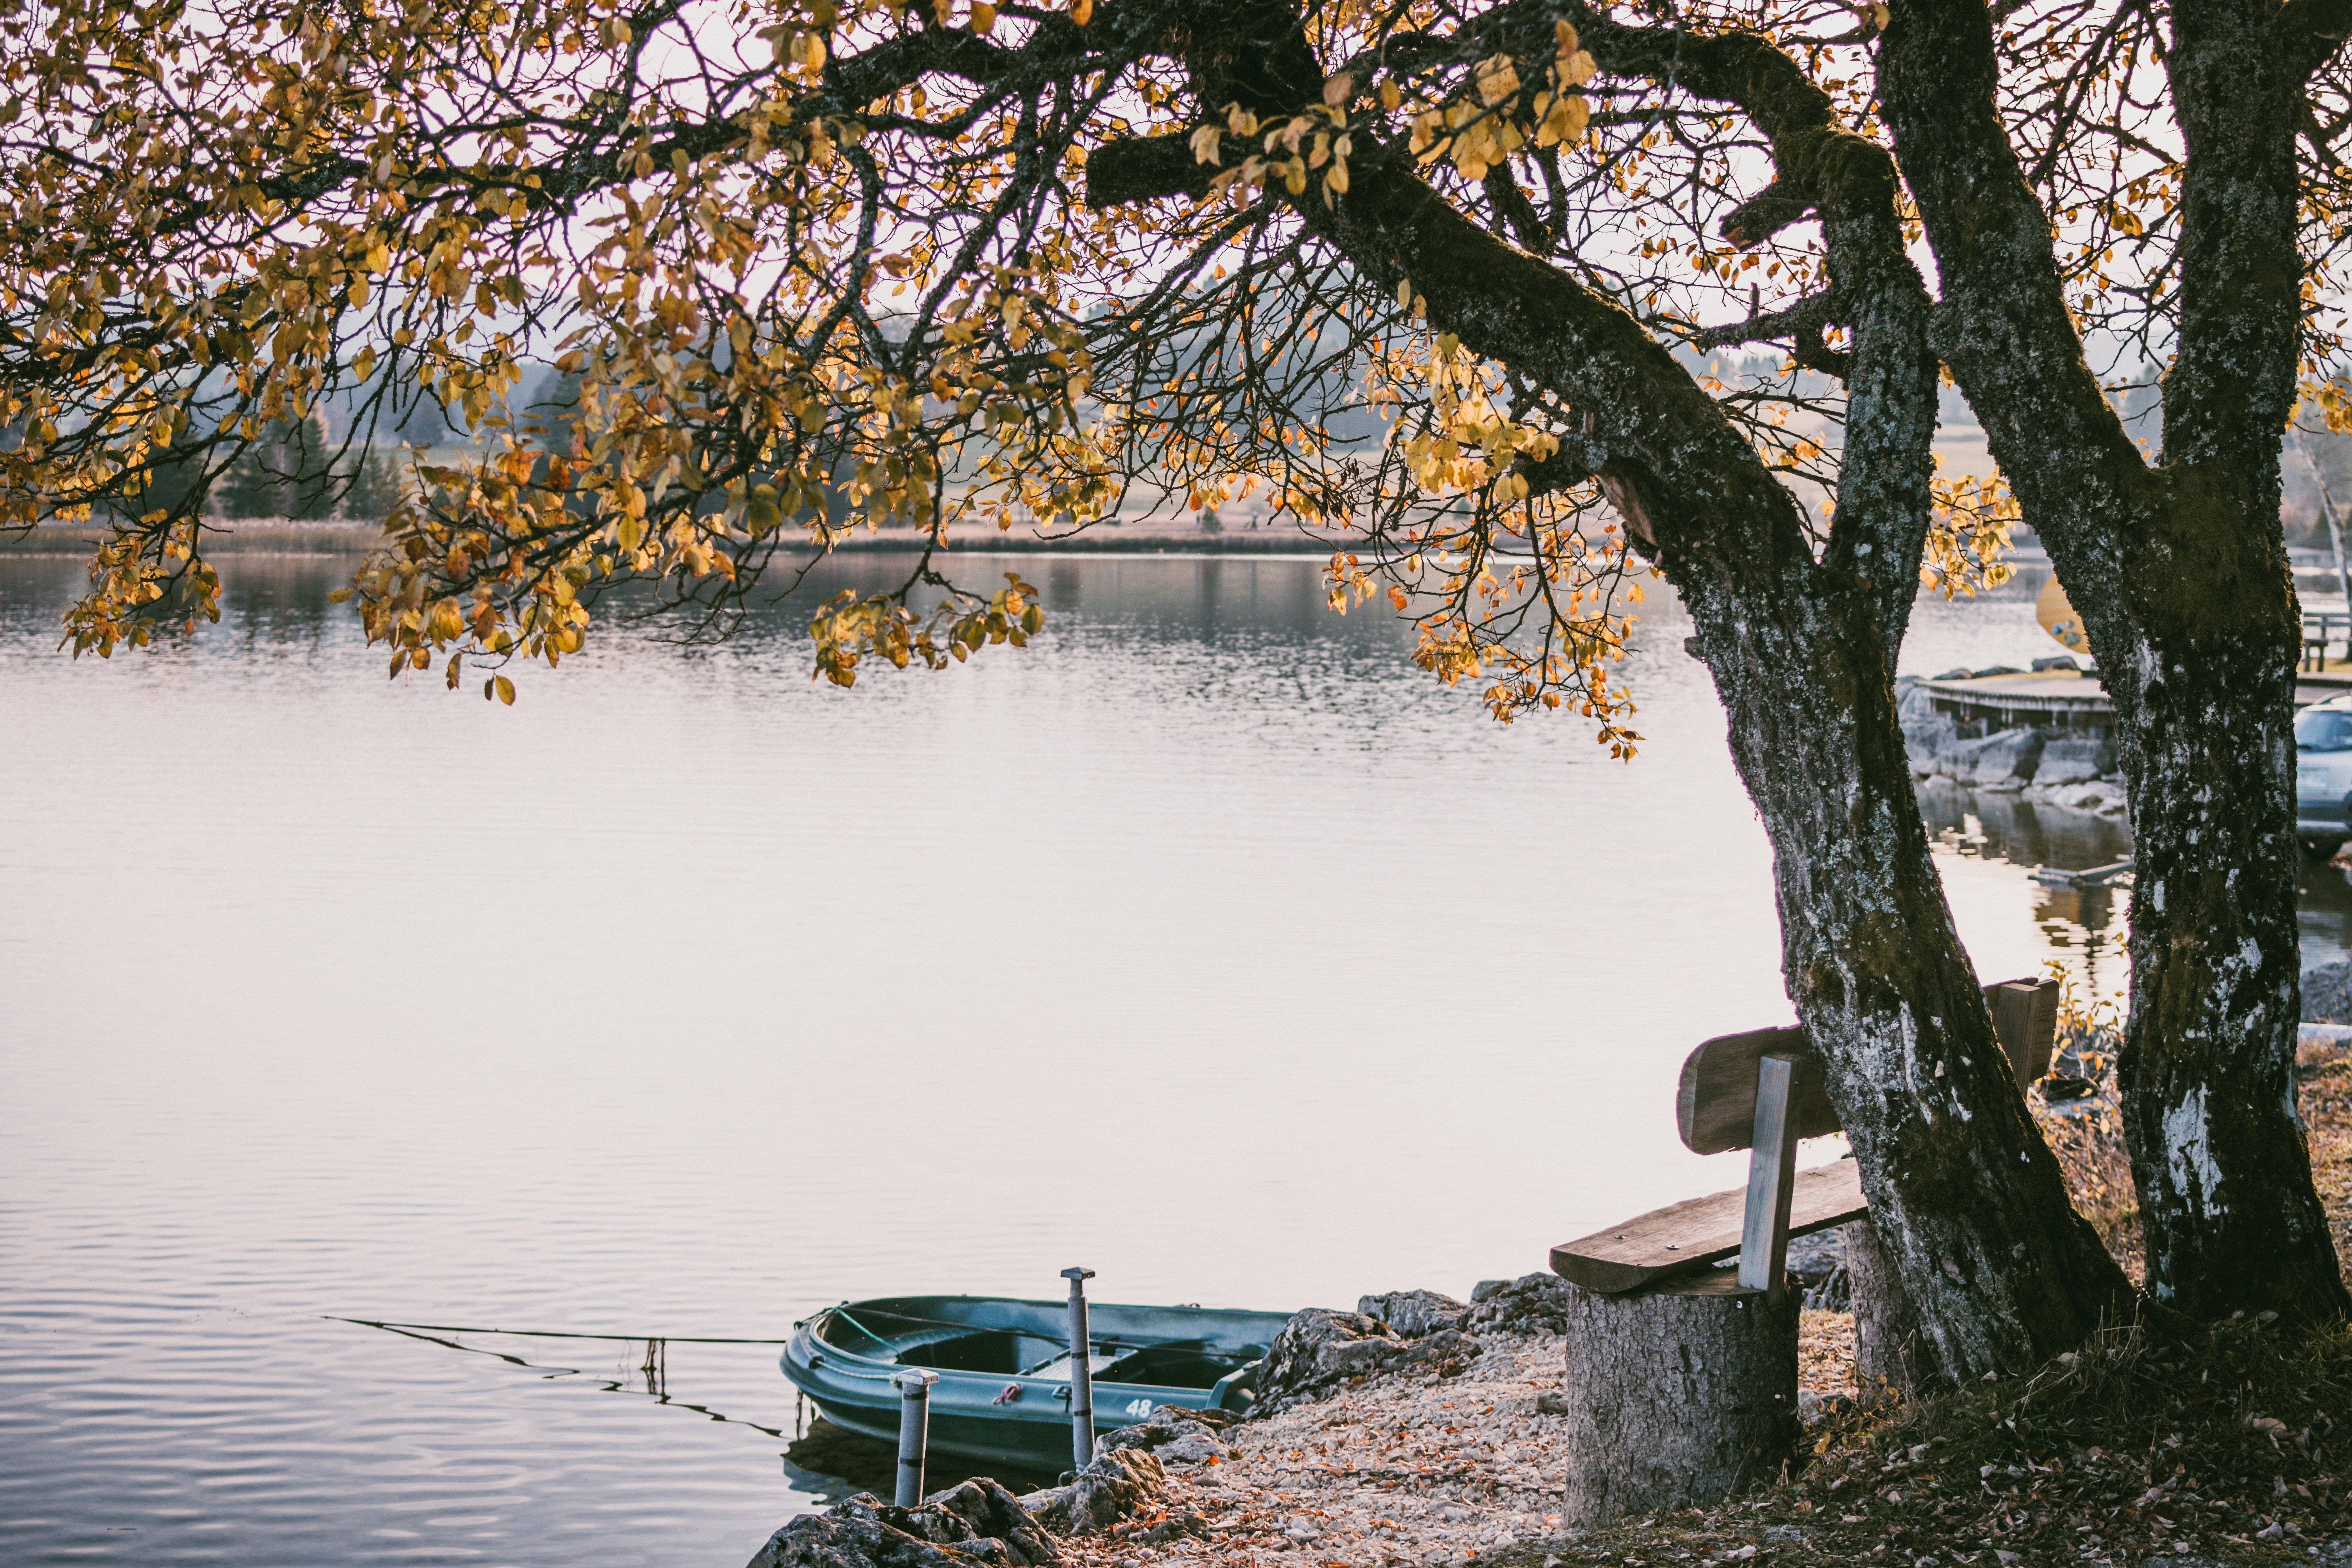 inflatable raft near wooden bench and tree